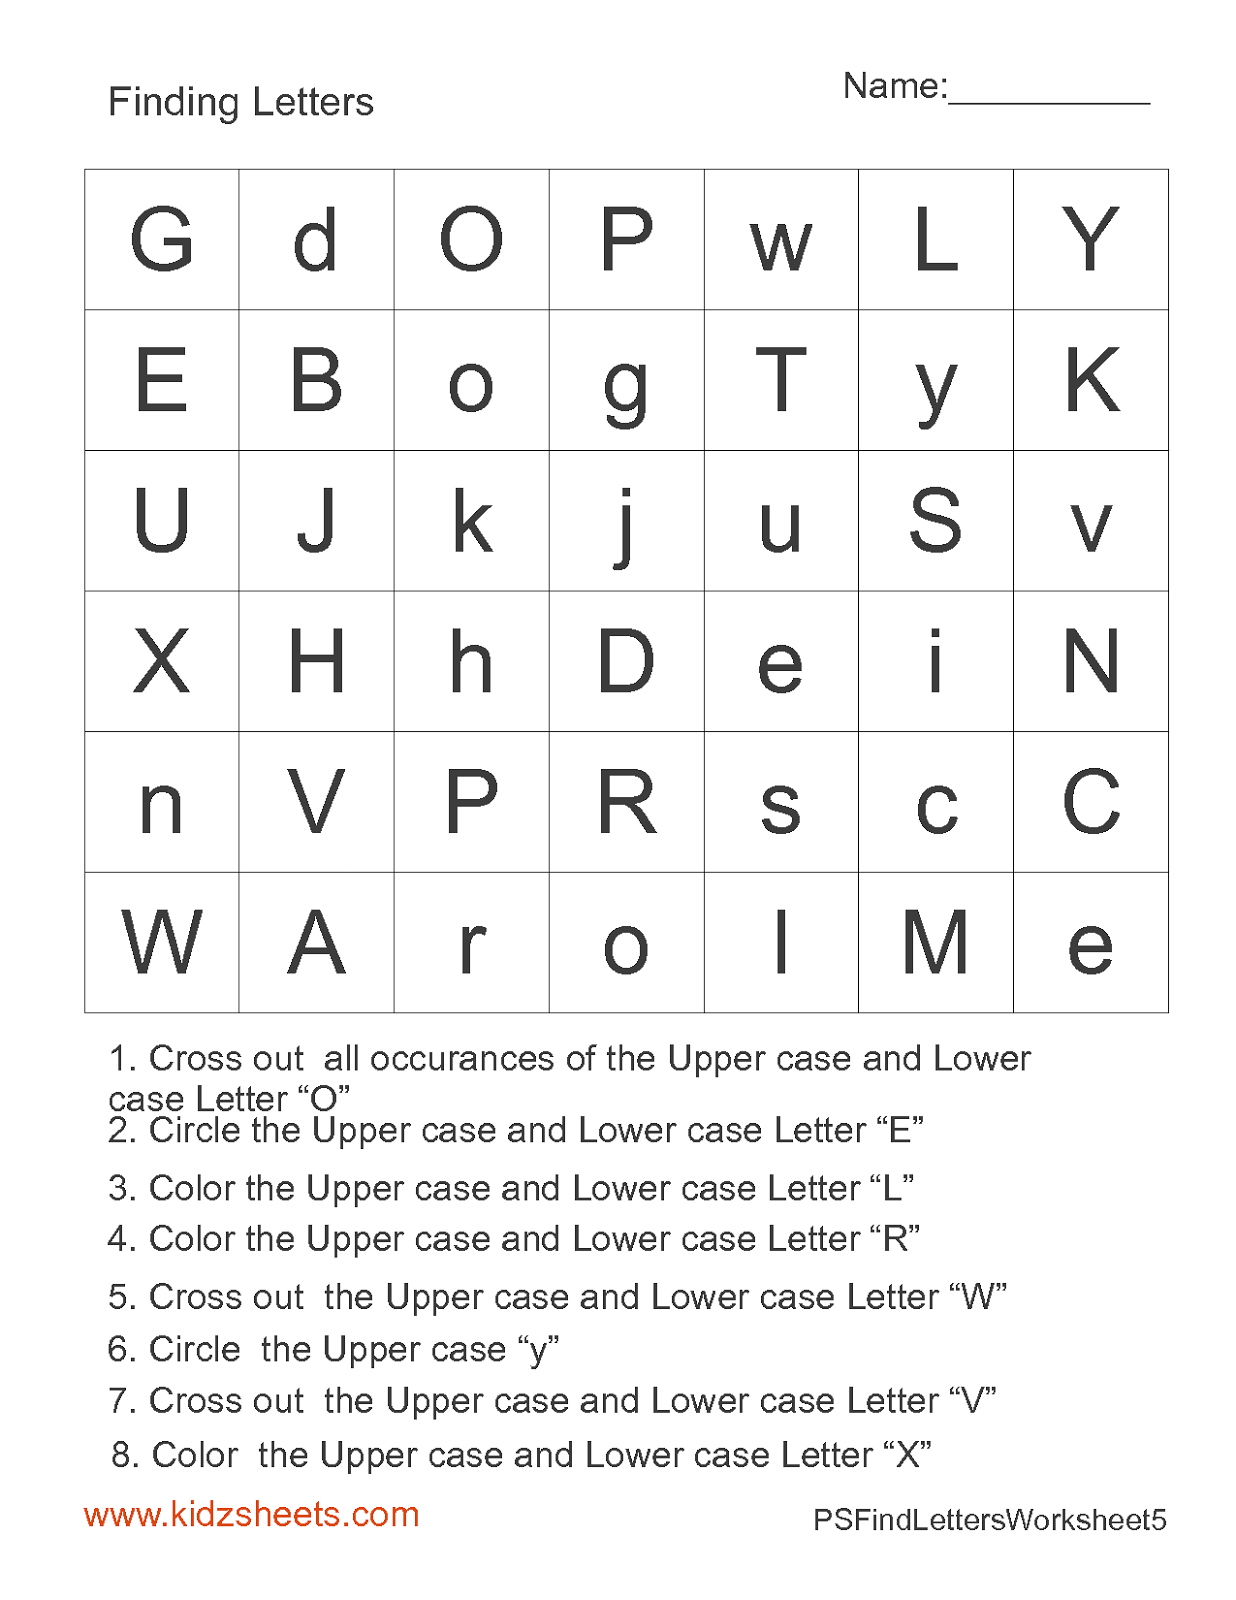 Kidz Worksheets Preschool Find Letters Worksheet5